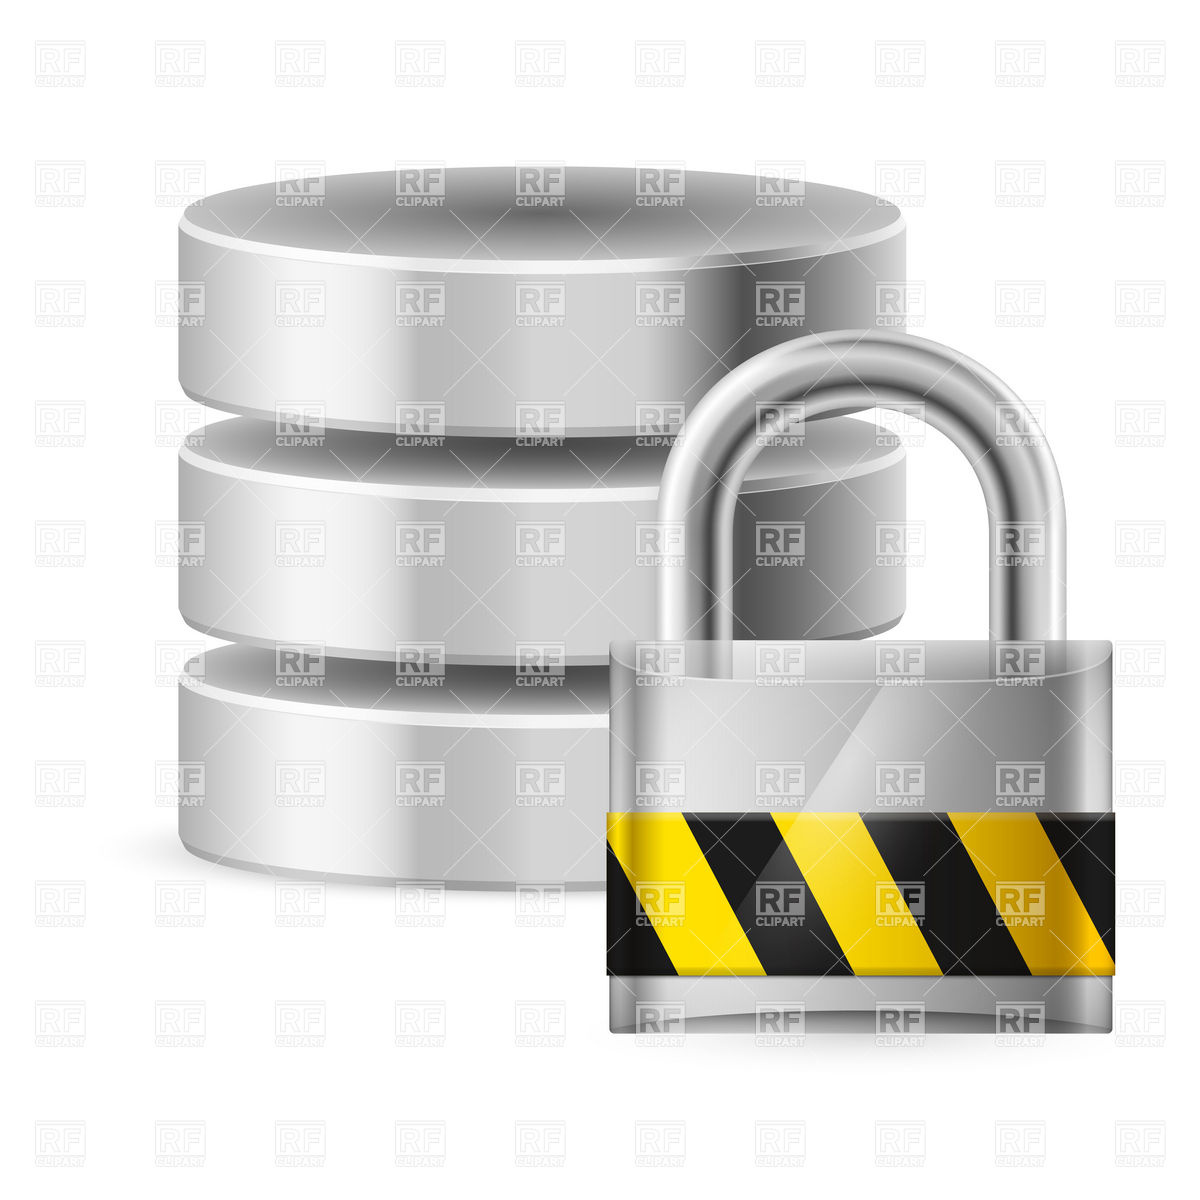 Database cylinder icon with padlock Vector Image #9513.